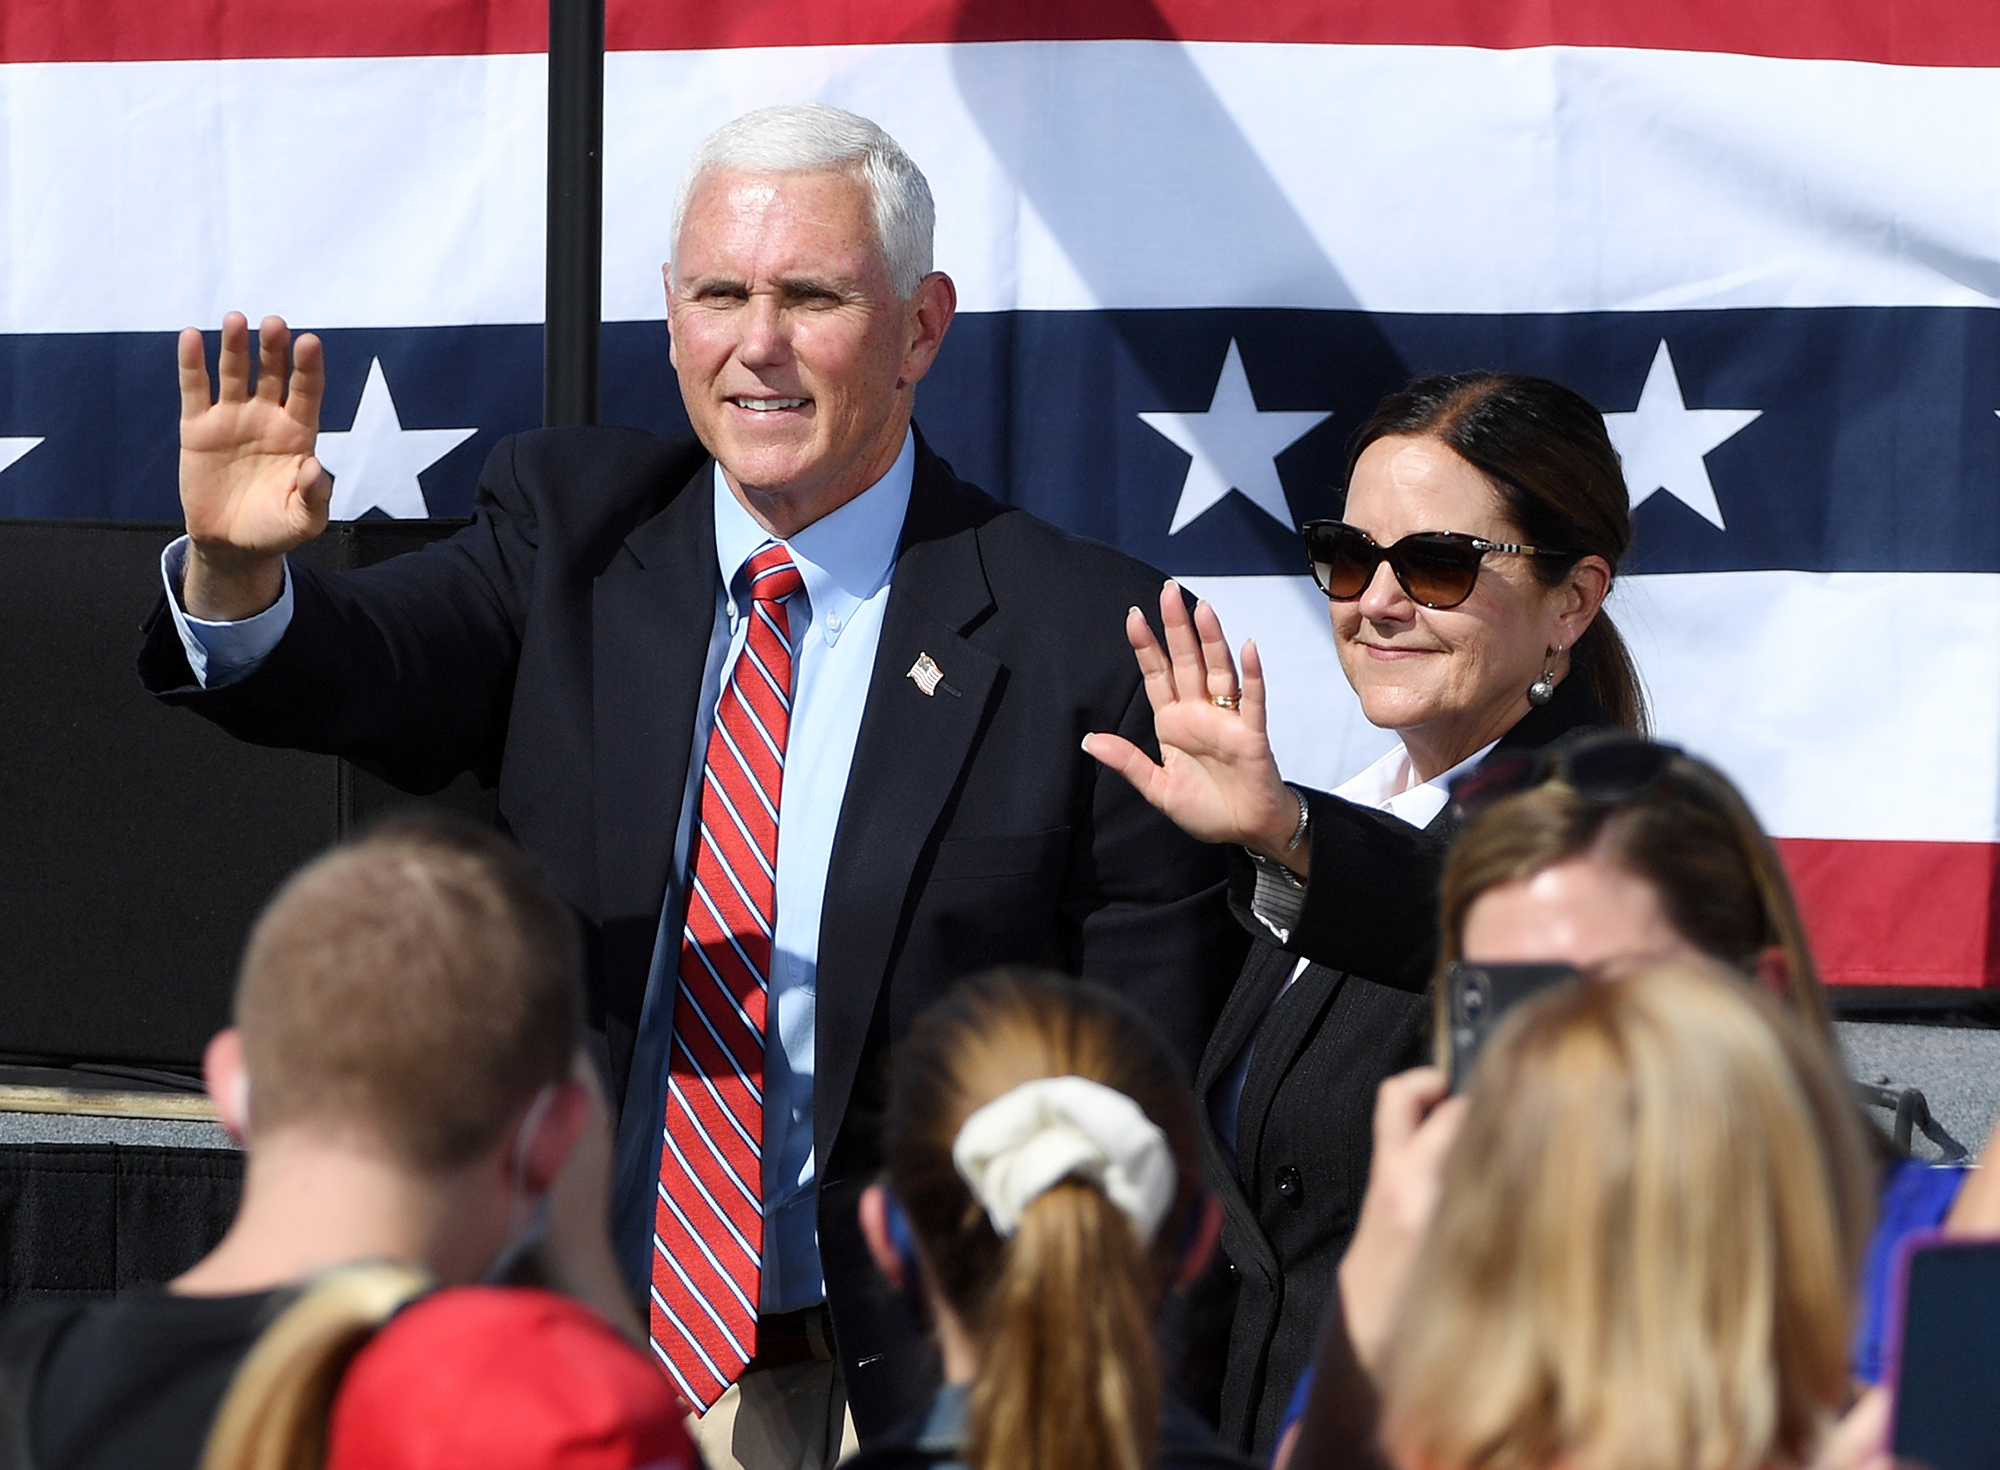 U.S. Vice President Mike Pence (L) and second lady Karen Pence greet supporters after speaking at a rally at the Boulder City Airport on October 8, 2020 in Boulder City, Nevada.